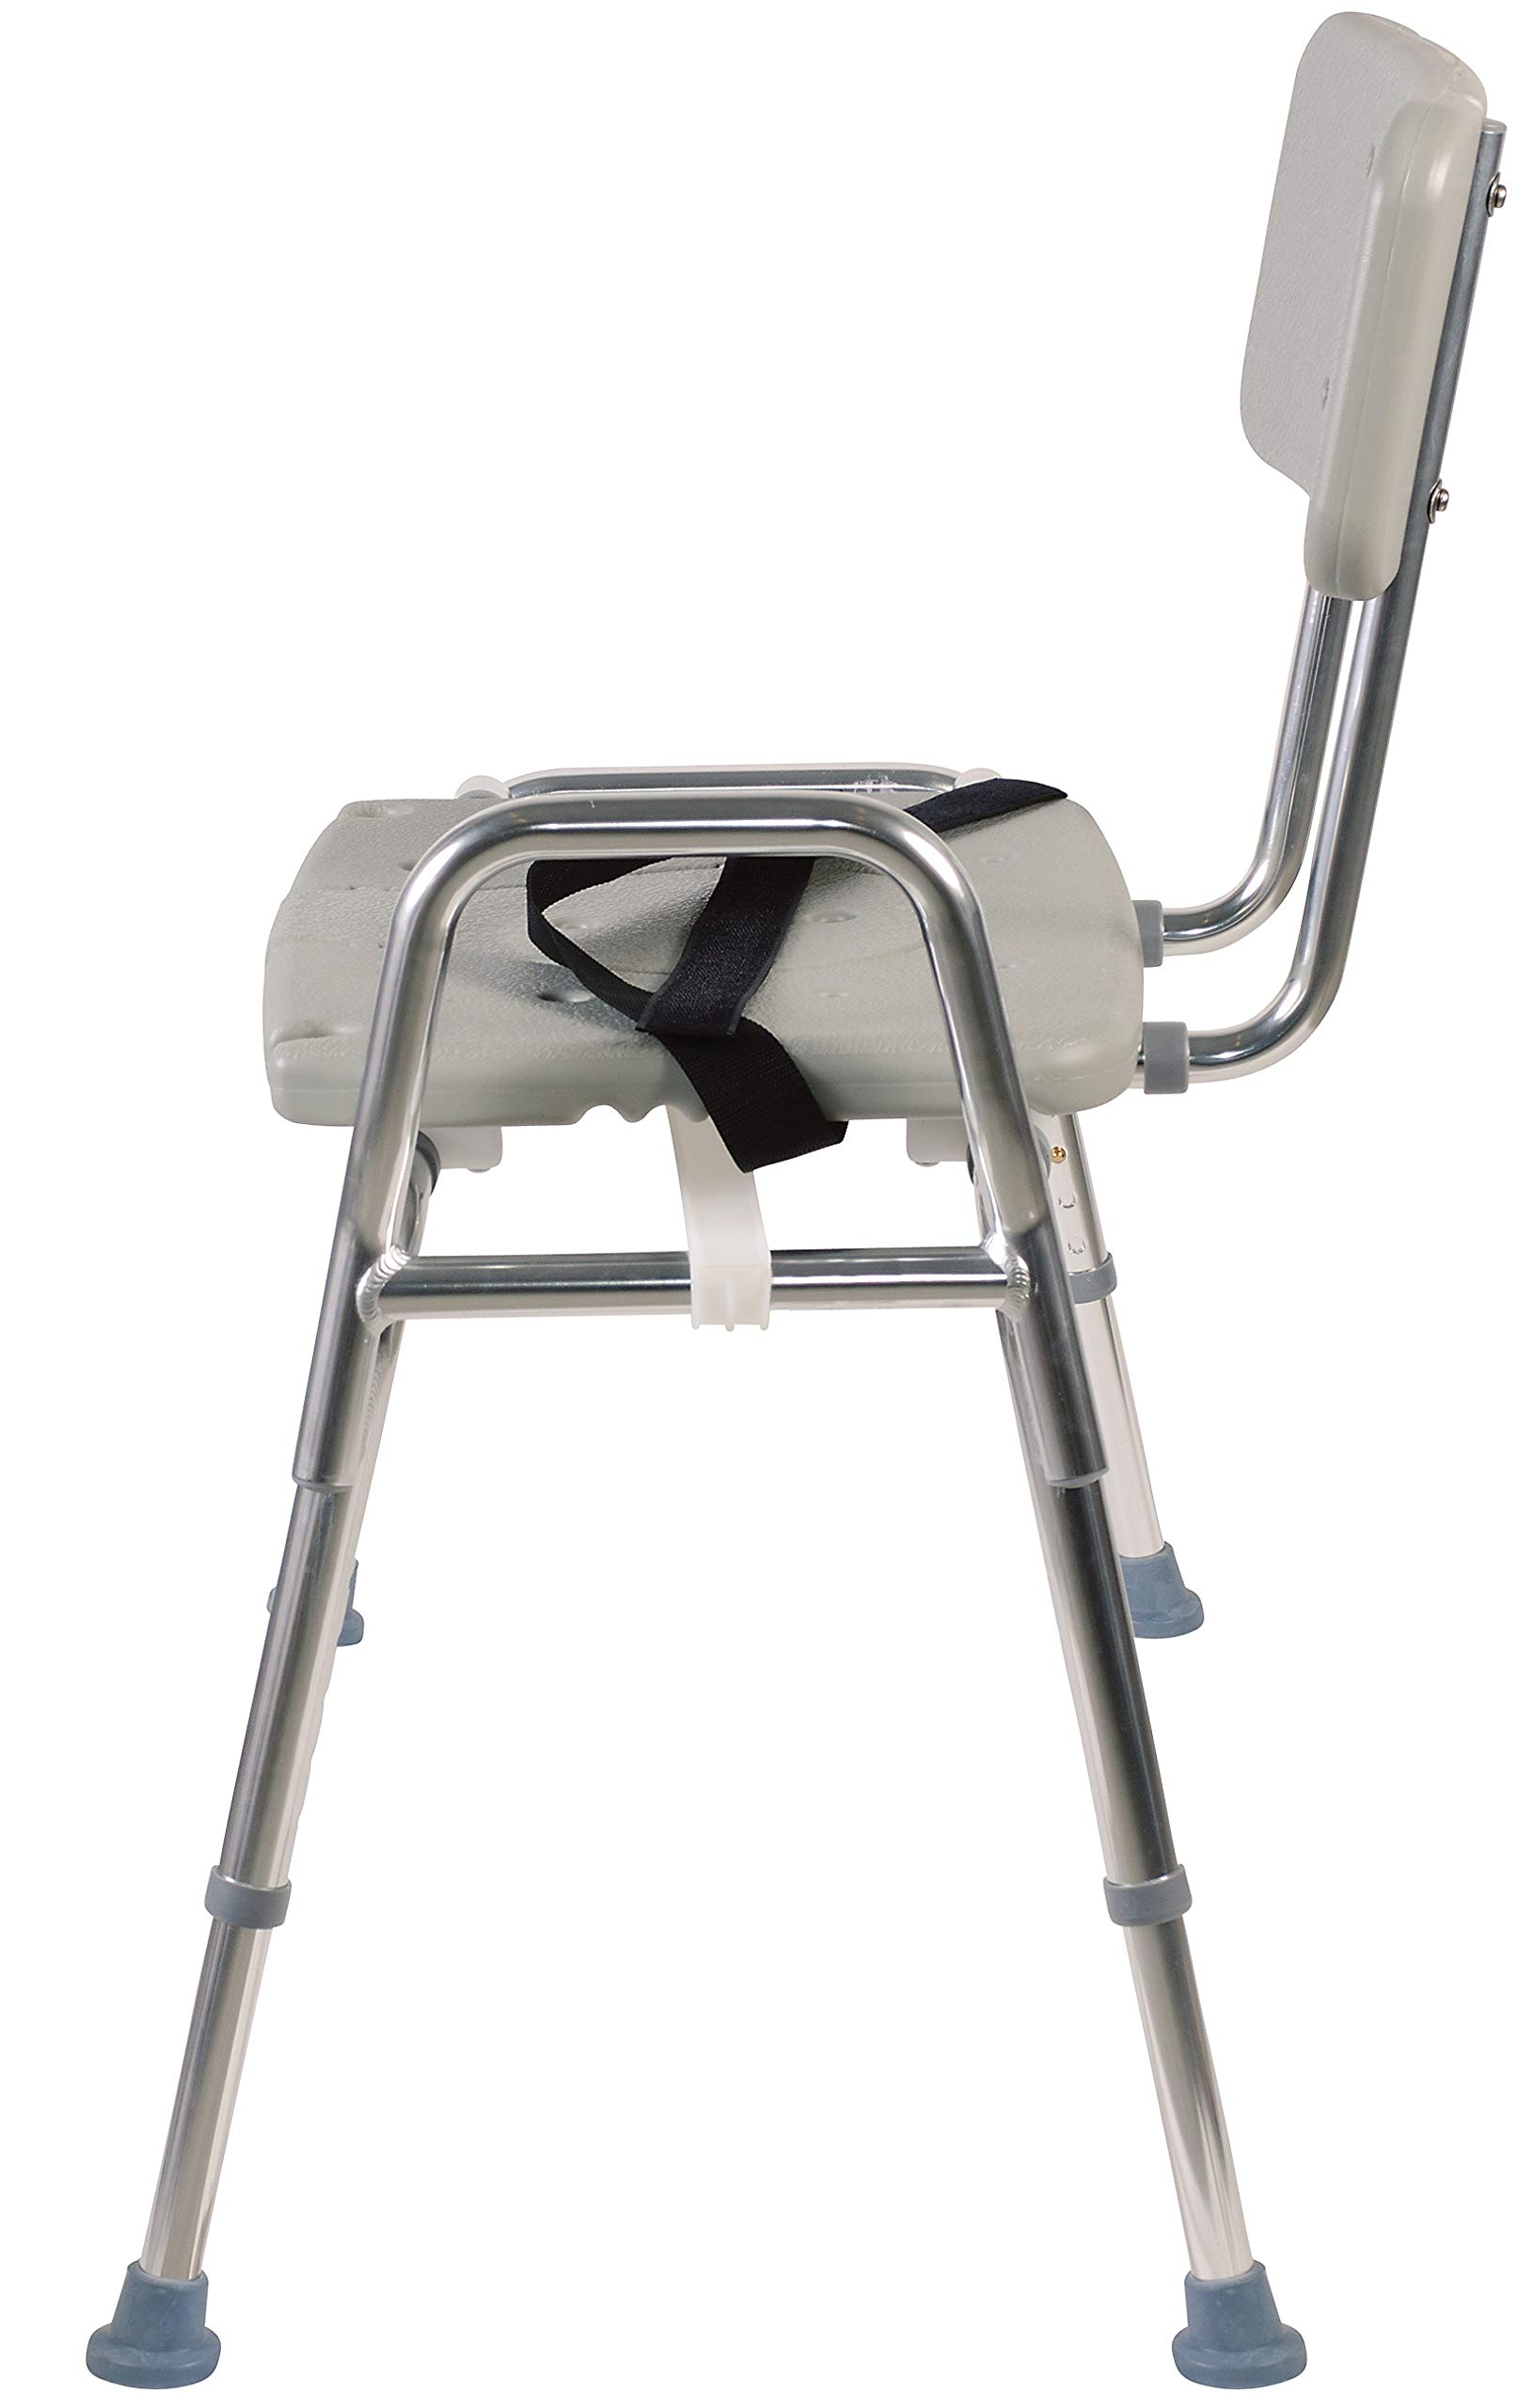 Tub Transfer Bench and Sliding Shower Chair Made of Heavy